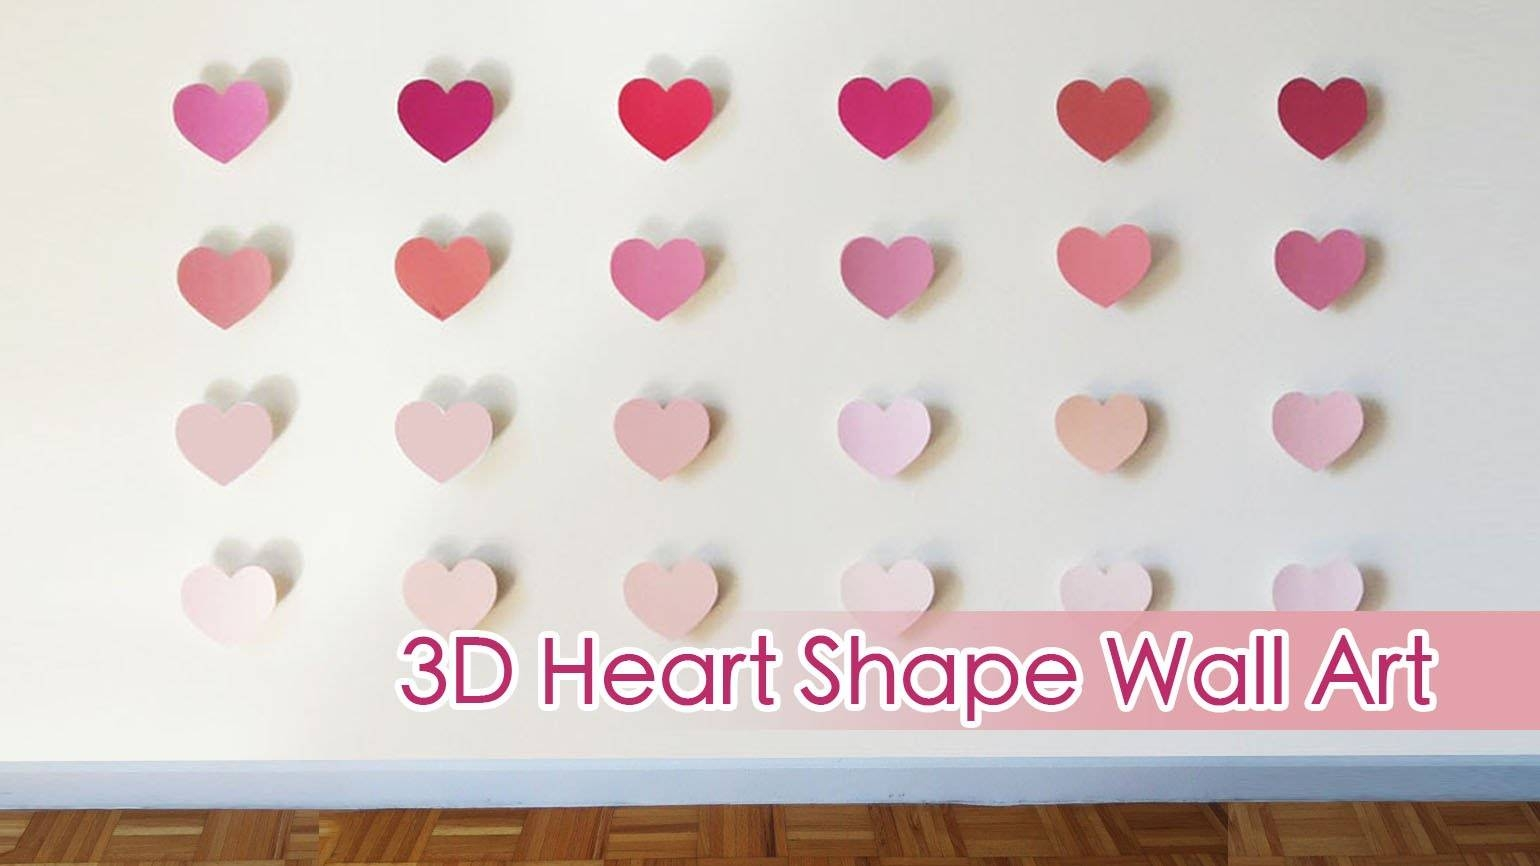 Ombre 3D Heart Shape Wall Art | Sunny Diy – Youtube Regarding Most Up To Date Heart 3D Wall Art (Gallery 4 of 20)